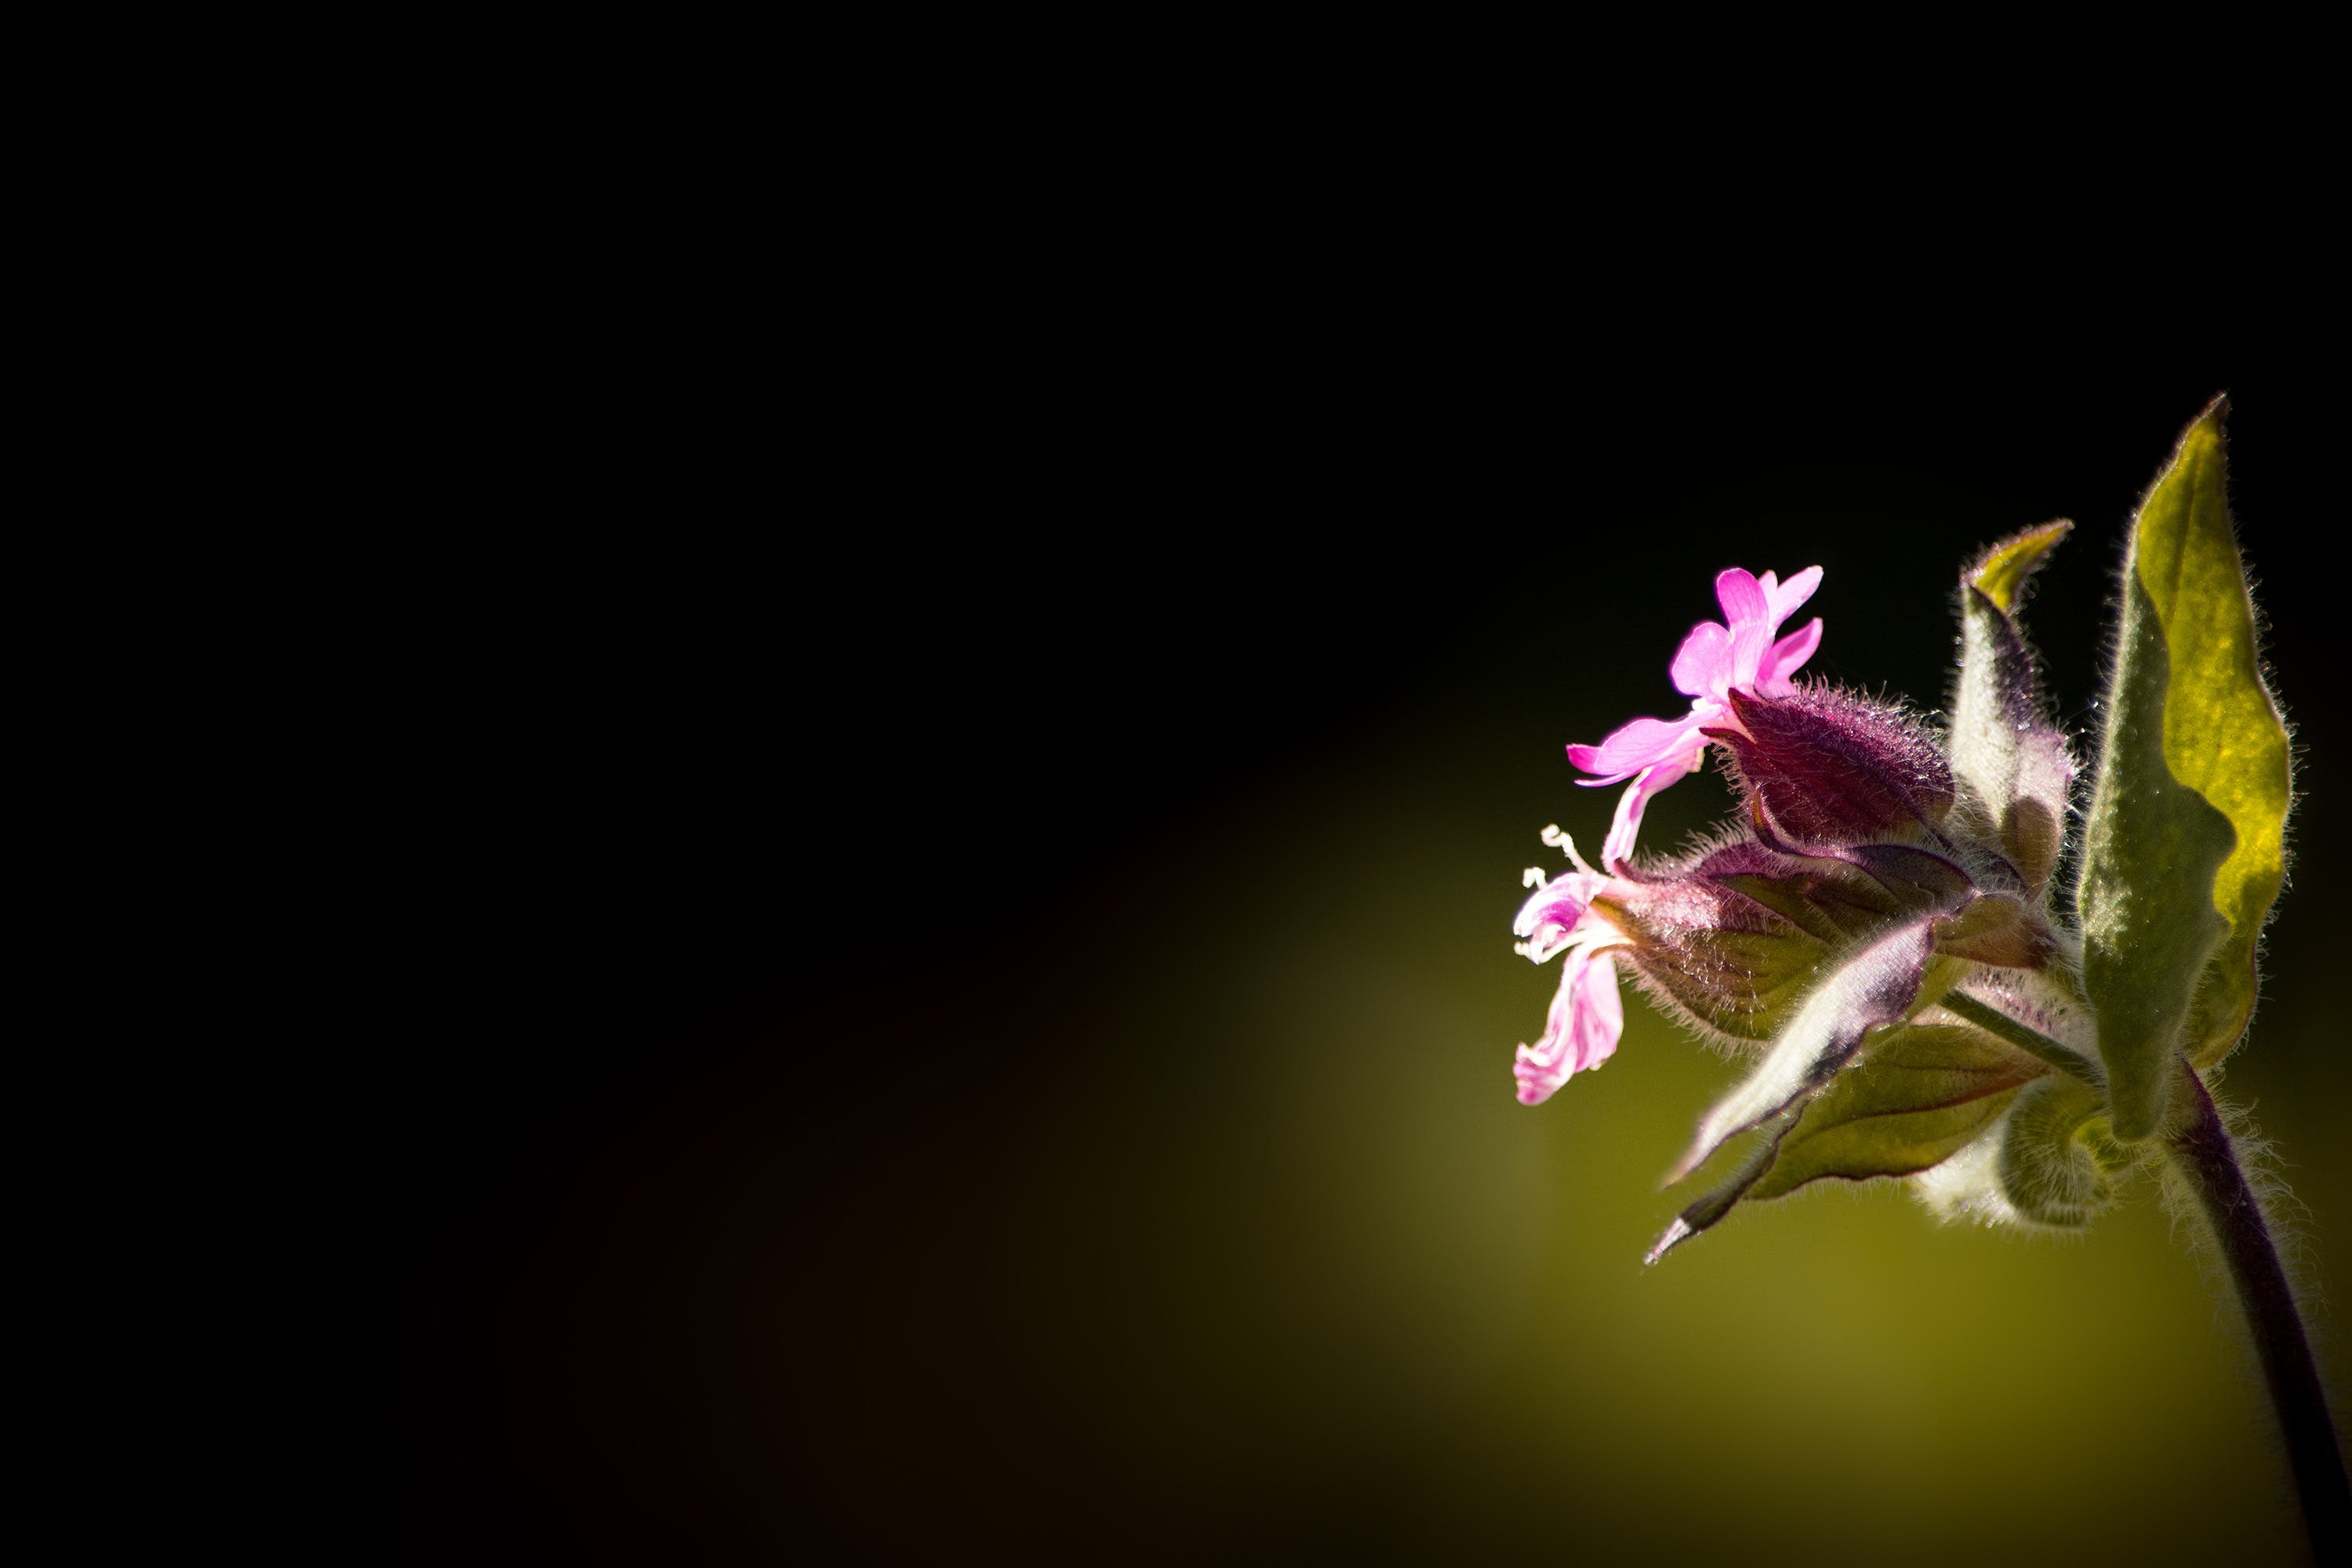 Low Pink Petal Flower With Green Leaves